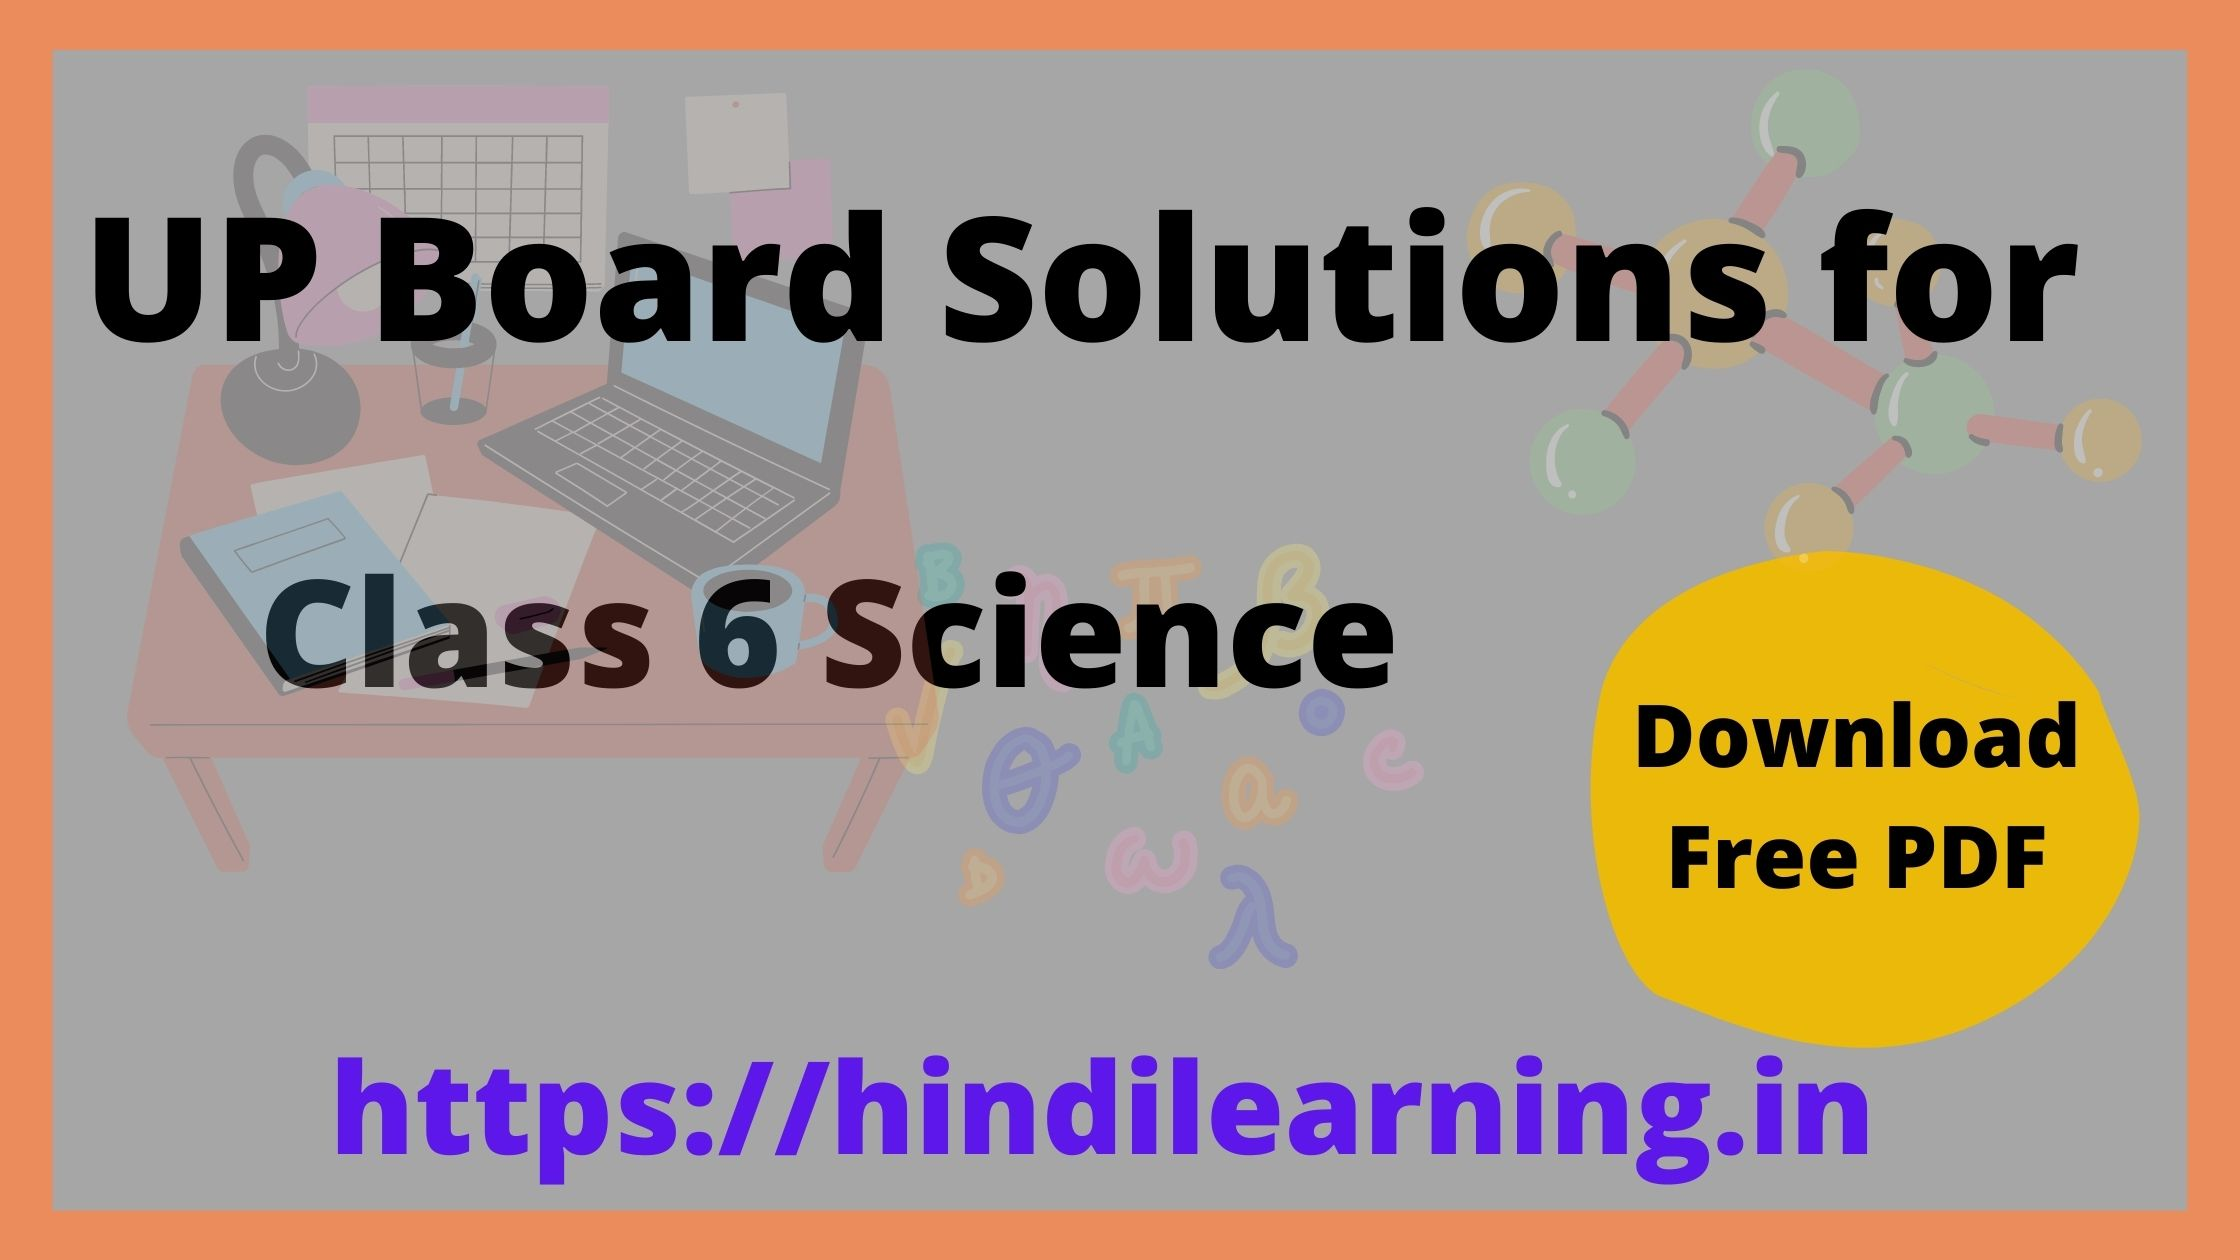 UP Board Solutions for Class 6 Science (विज्ञान)